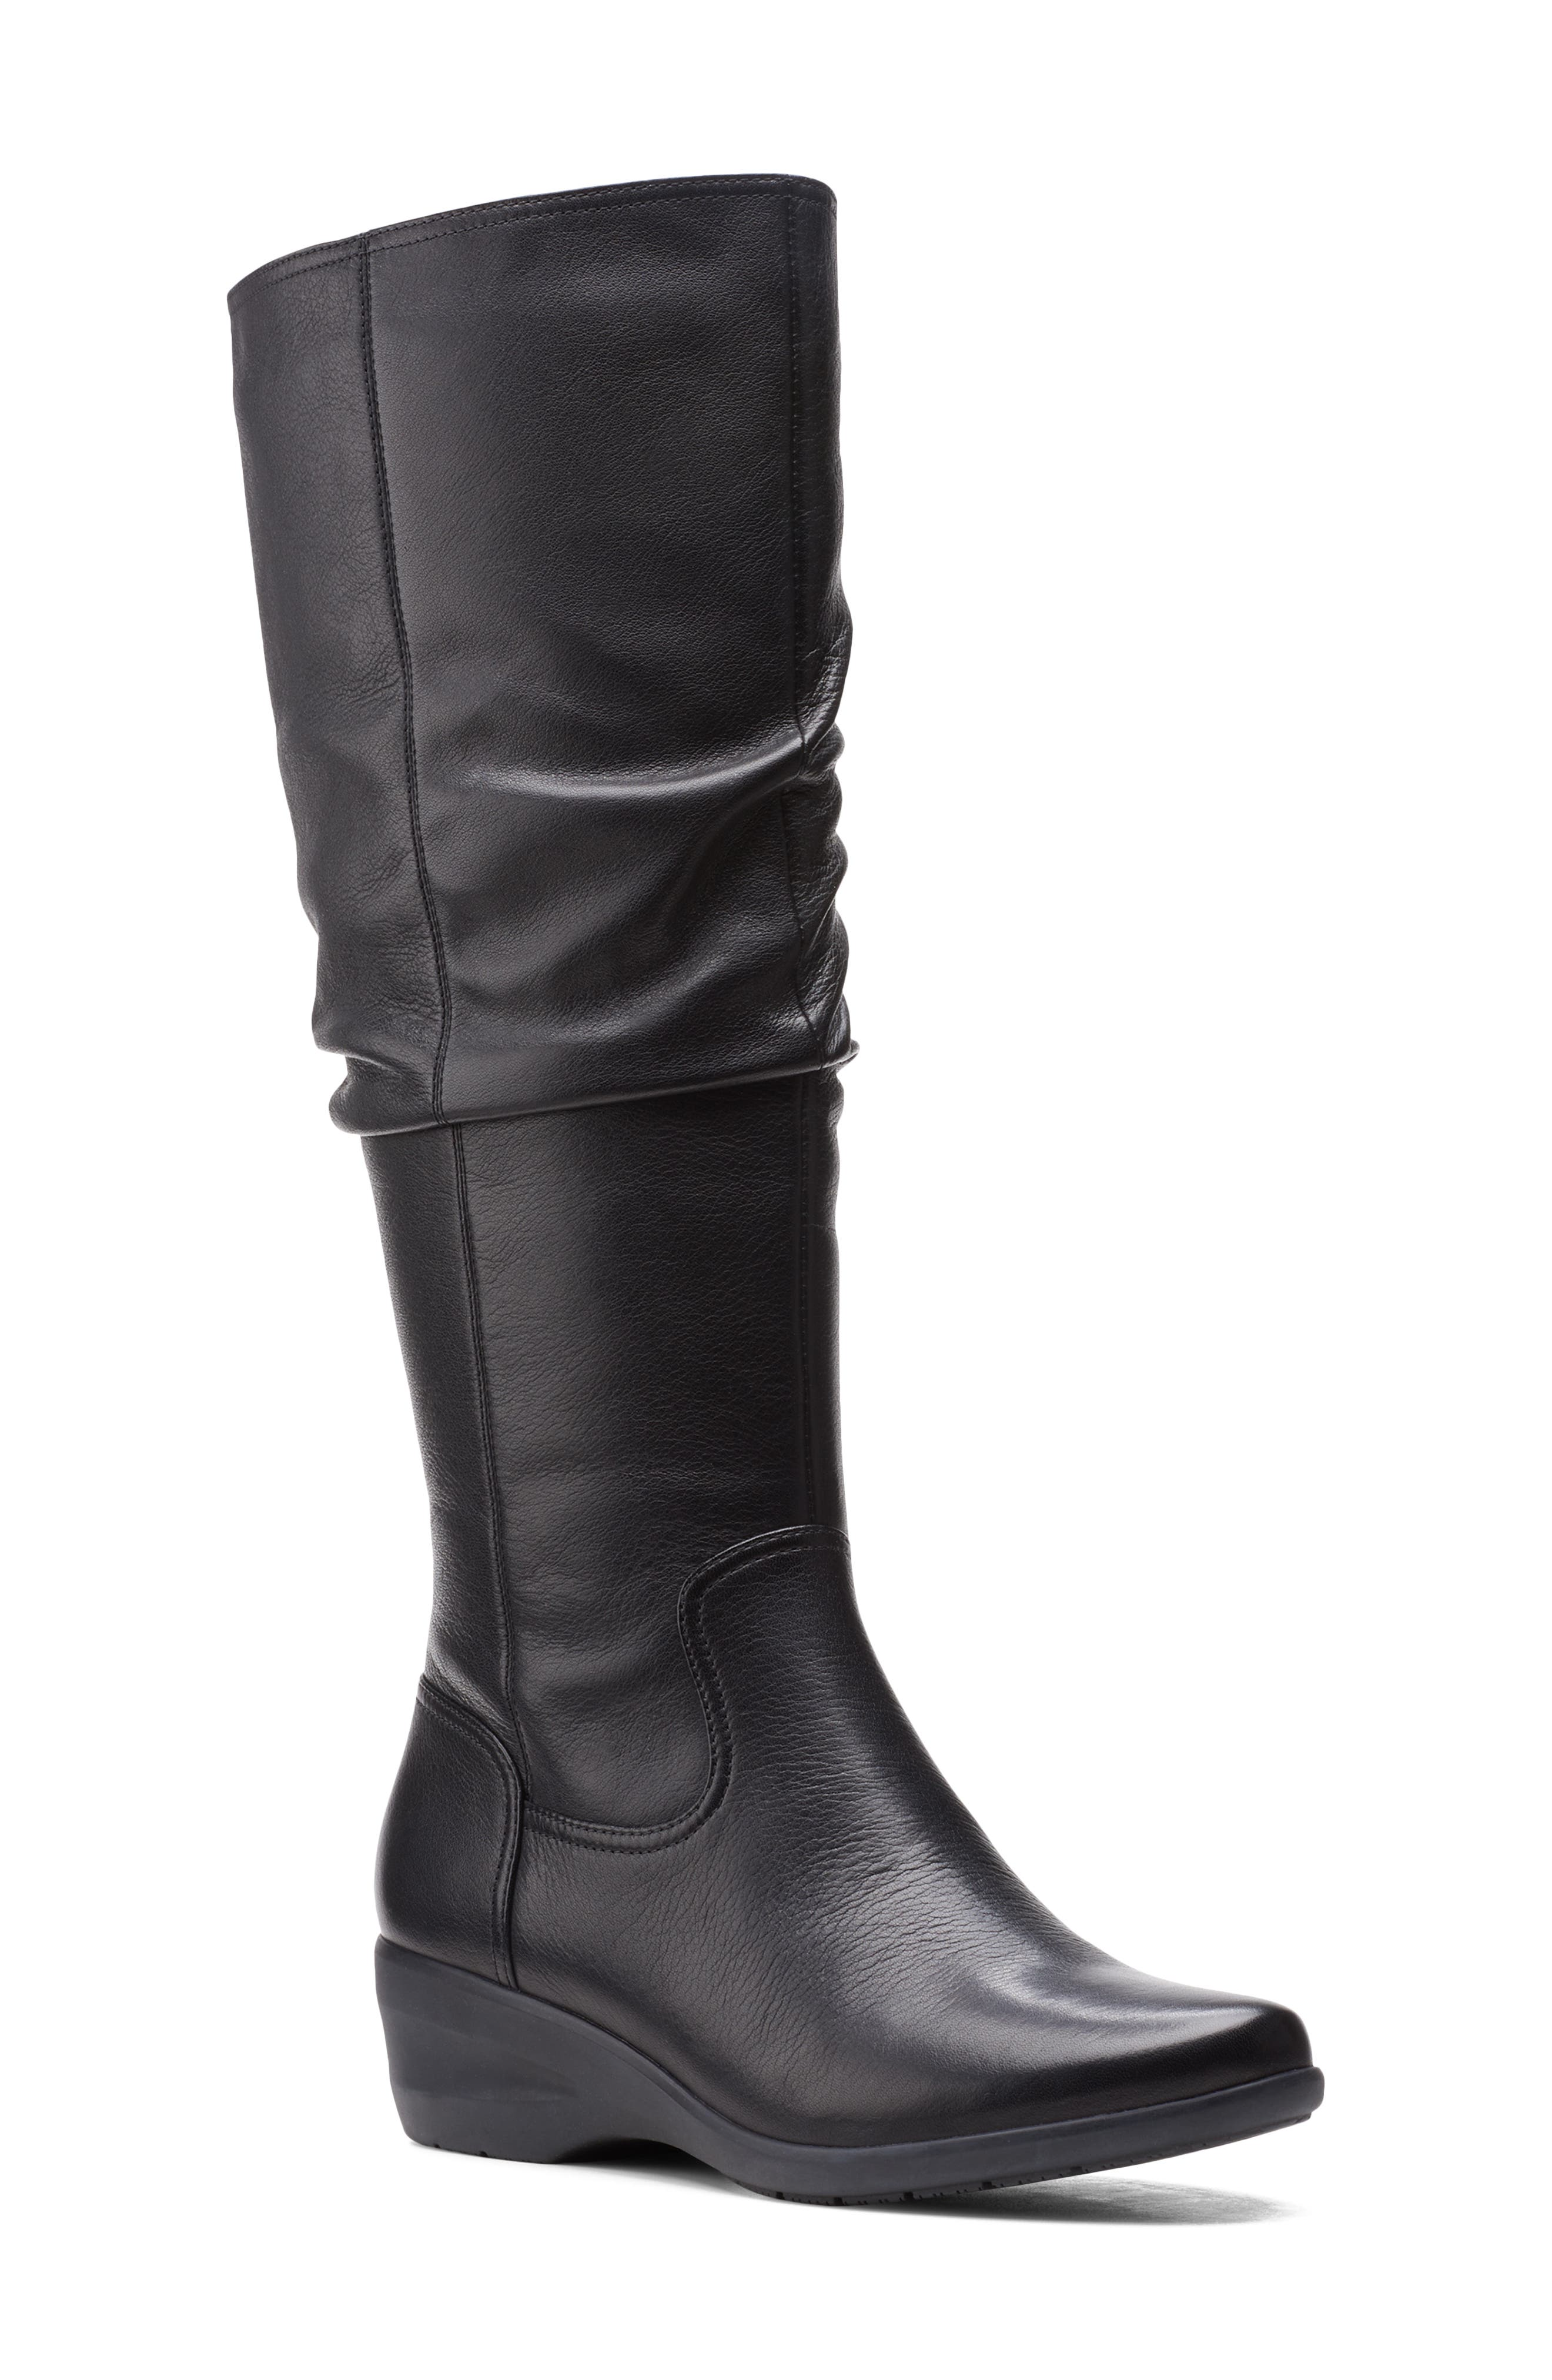 Women's Clarks Rosely Knee High Leather Boot